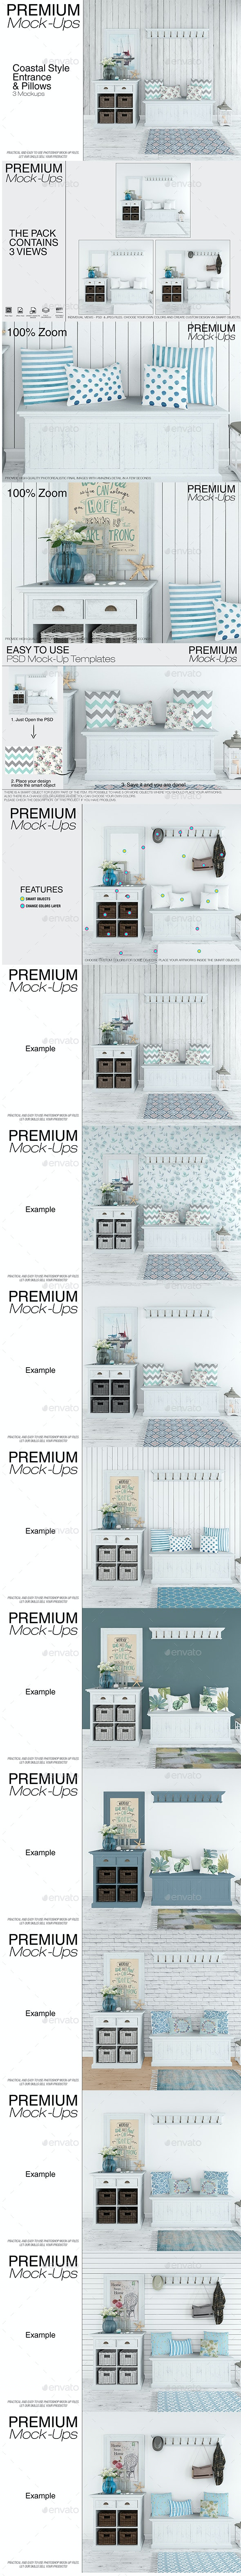 Coastal Style Entrance with Pillows - Print Product Mock-Ups